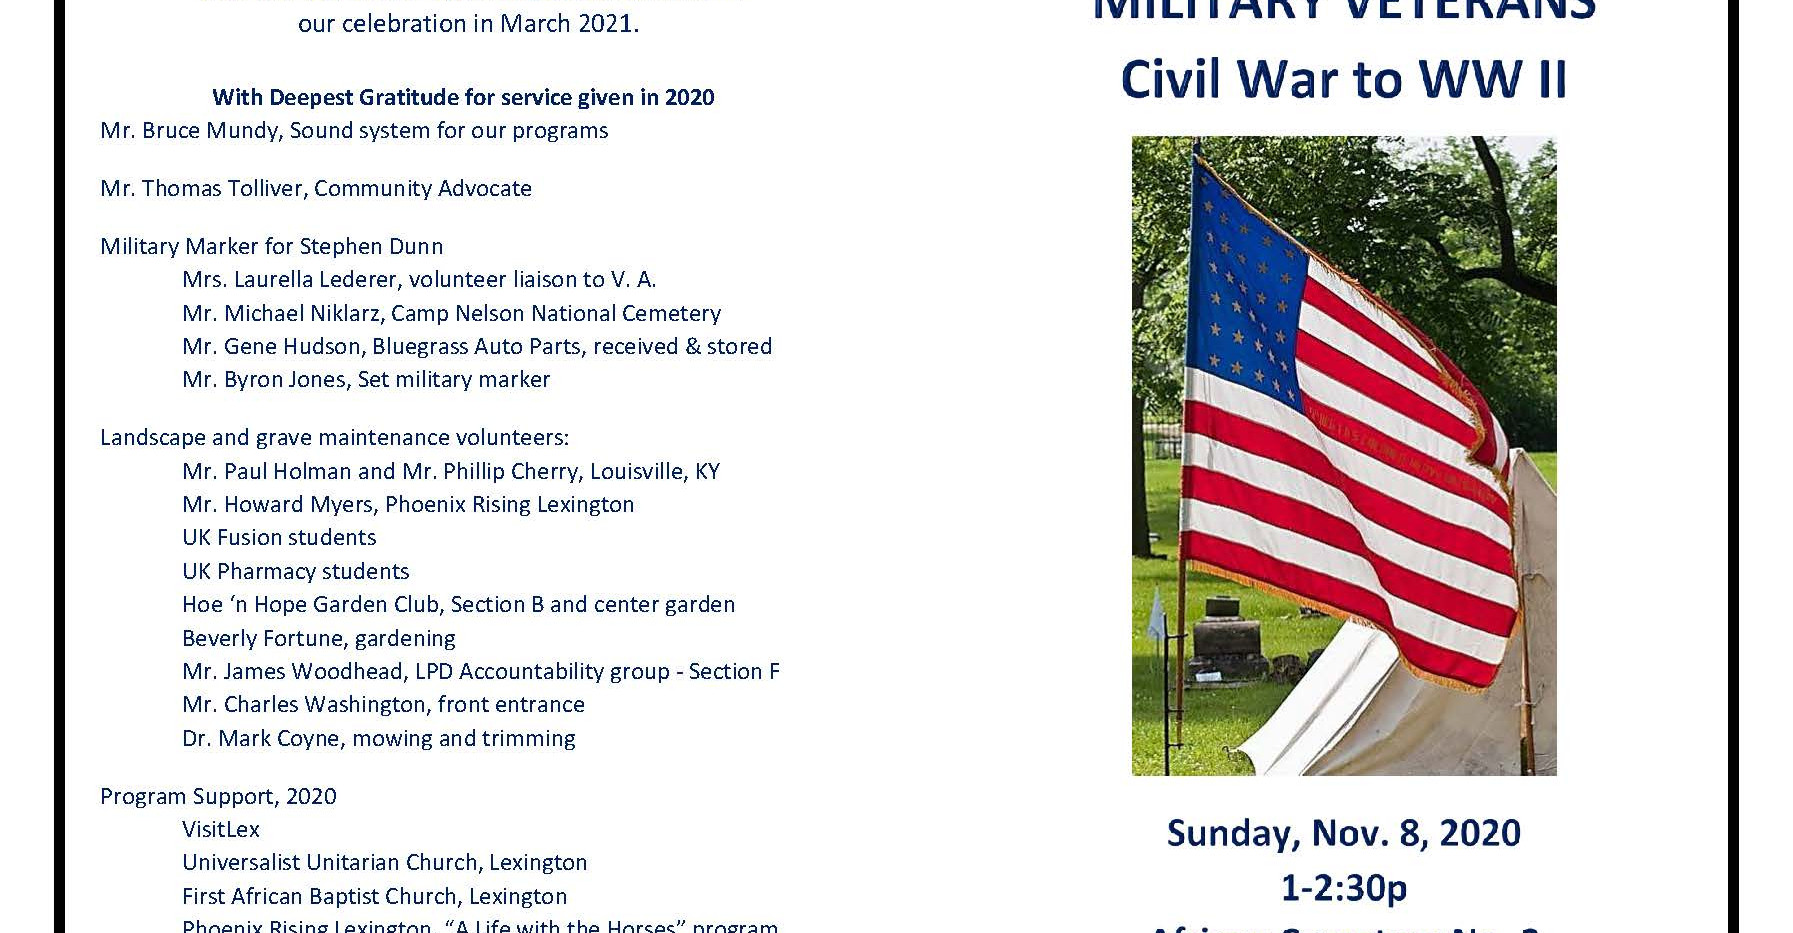 November 8 Military Veterans Civil War to WWII